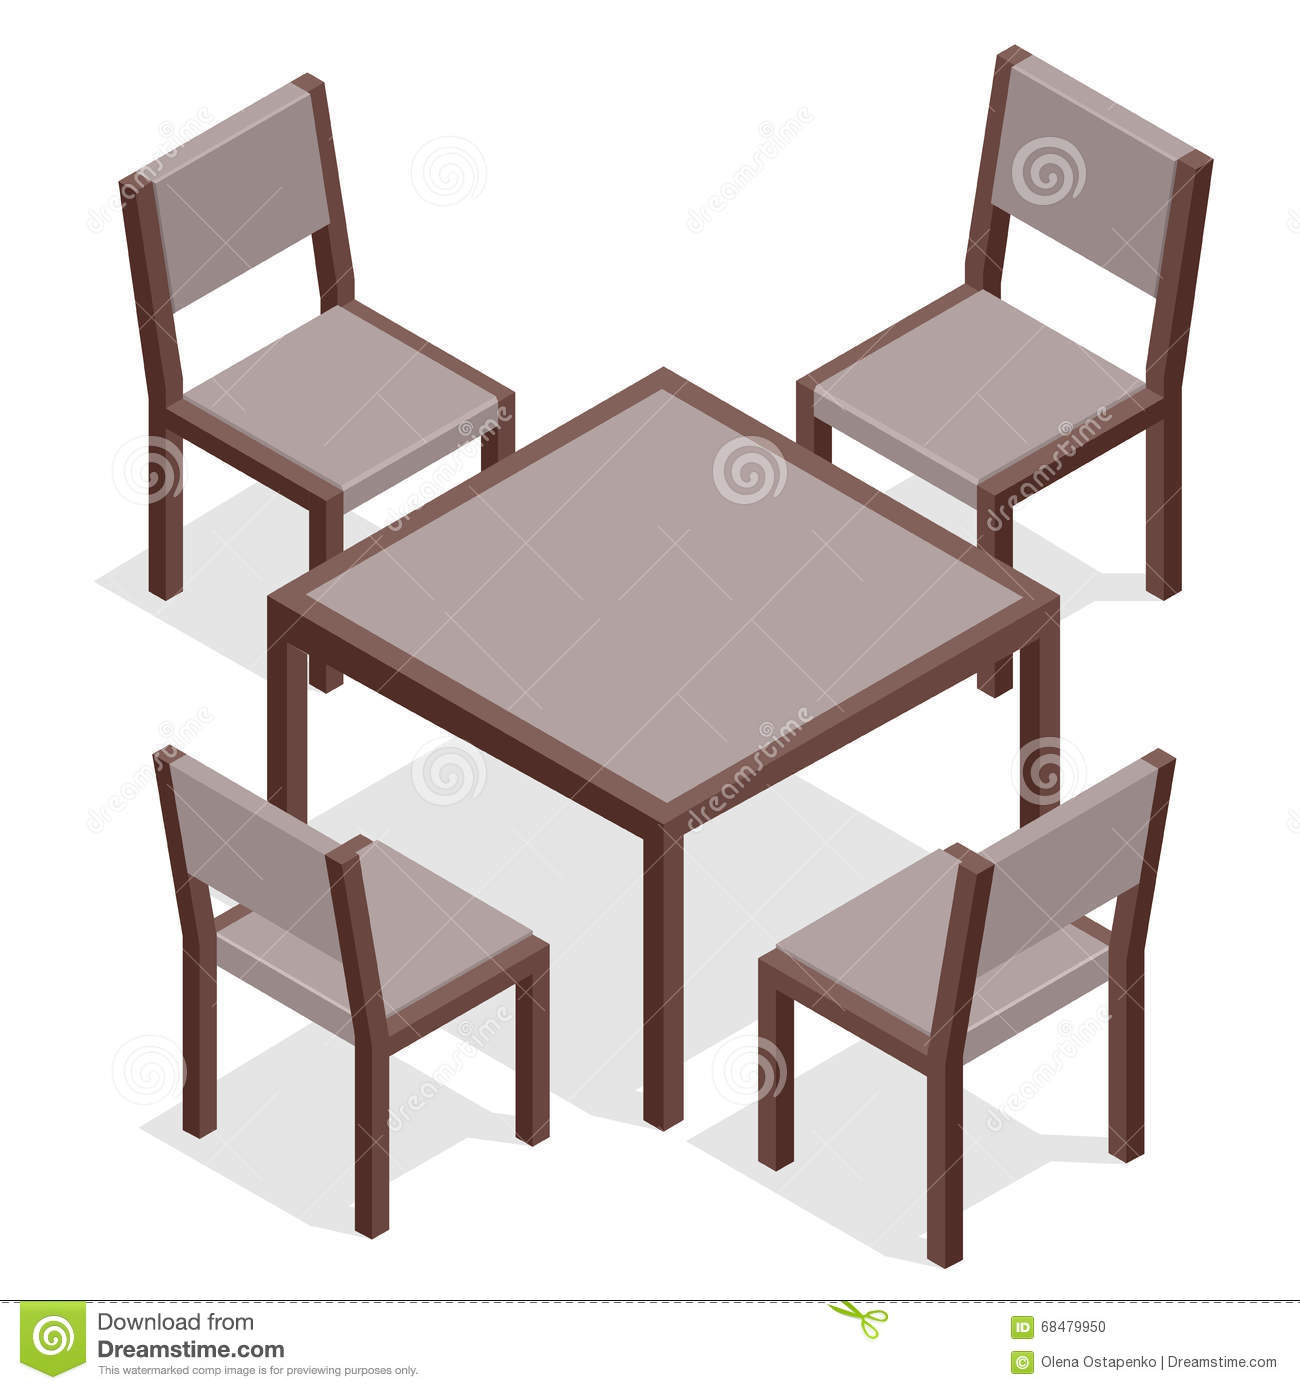 Modern cafe chairs and tables - Wooden Table With Chairs For Cafes Modern Table And Chairs On White Background Flat